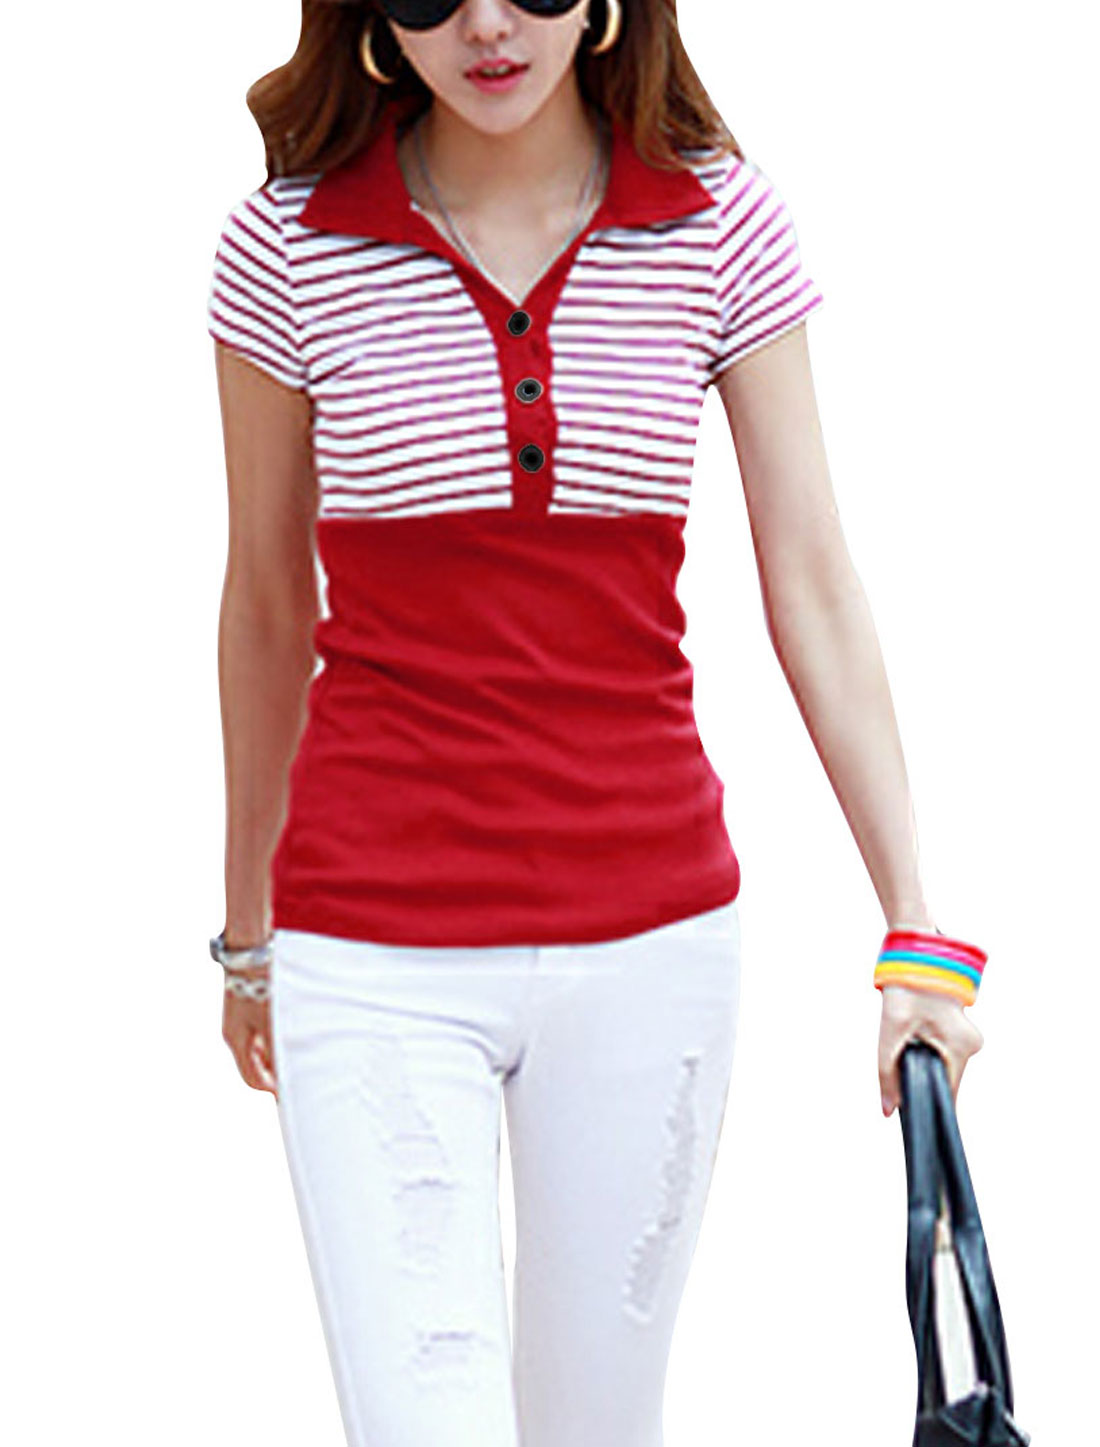 Women Short Sleeve Stripes Ribbing Top Shirt Red White XS